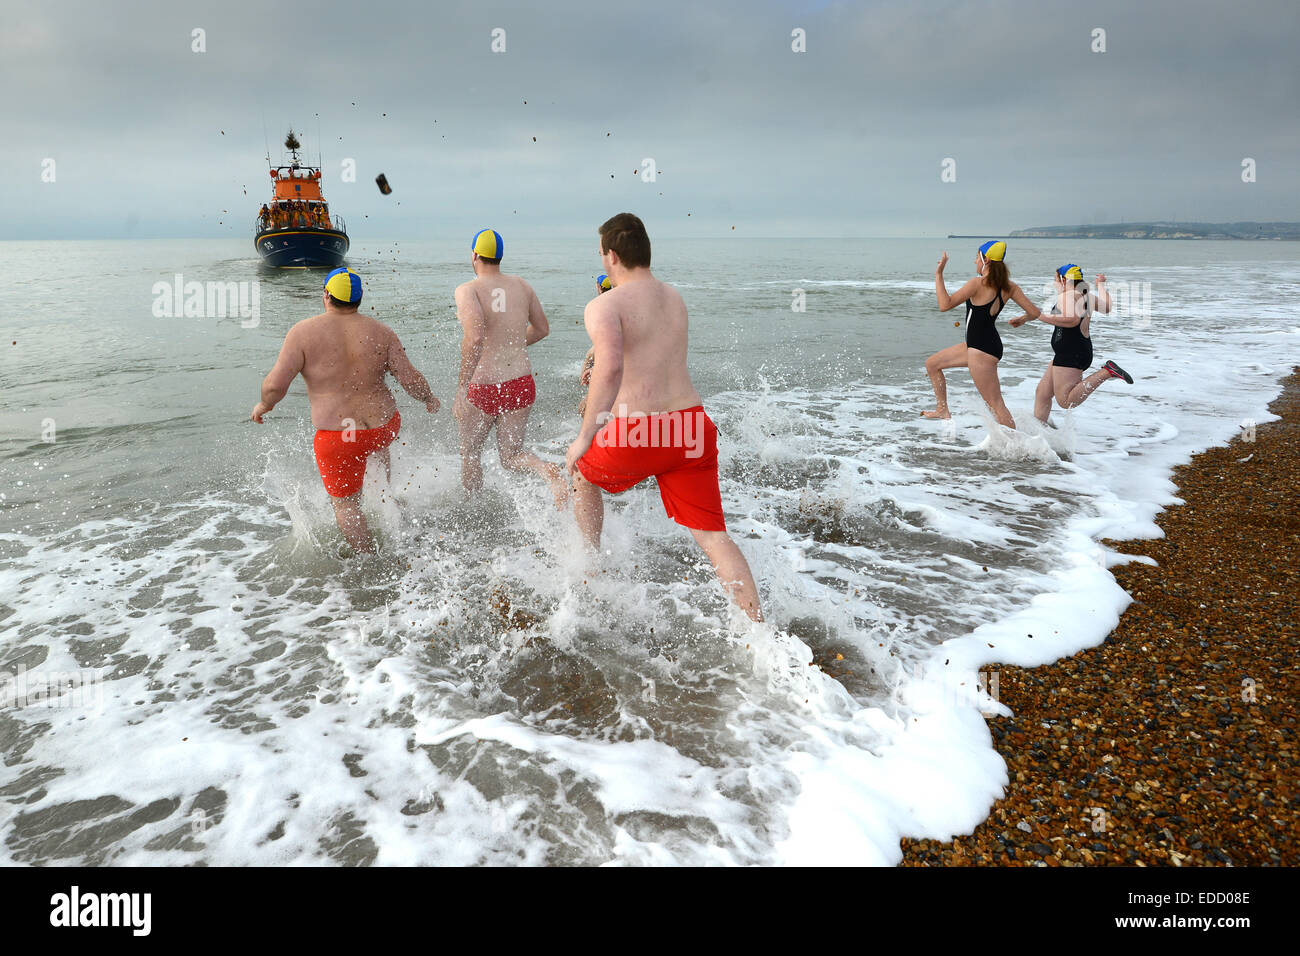 New Year dip in the sea by Seaford Lifeguards, Seaford Bay, Sussex, UK - Stock Image